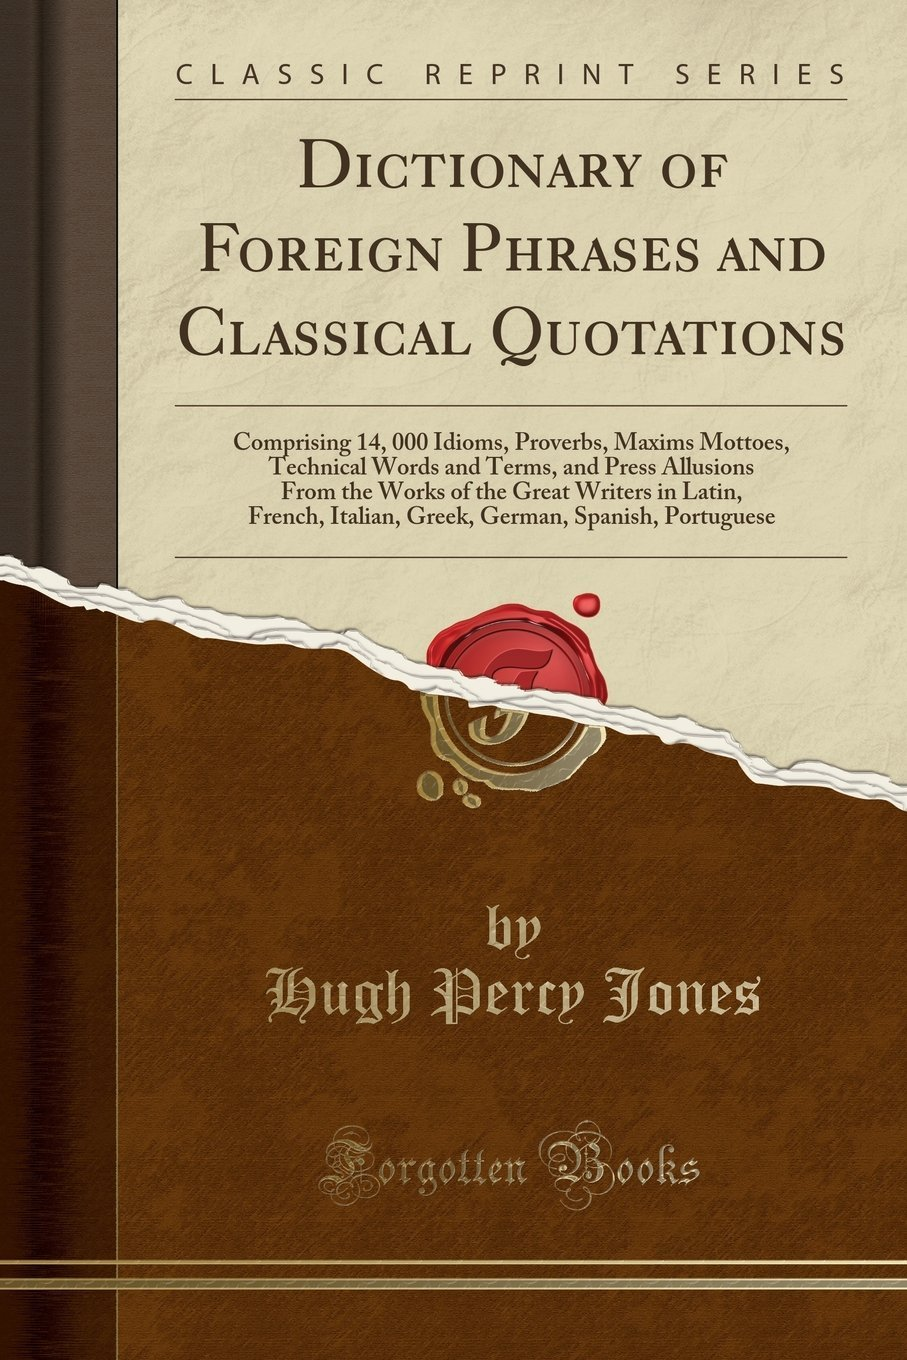 Buy Dictionary of Foreign Phrases and Classical Quotations: Comprising 14, 000 Idioms, Proverbs, Maxims Mottoes, Technical Words and Terms, and Press .